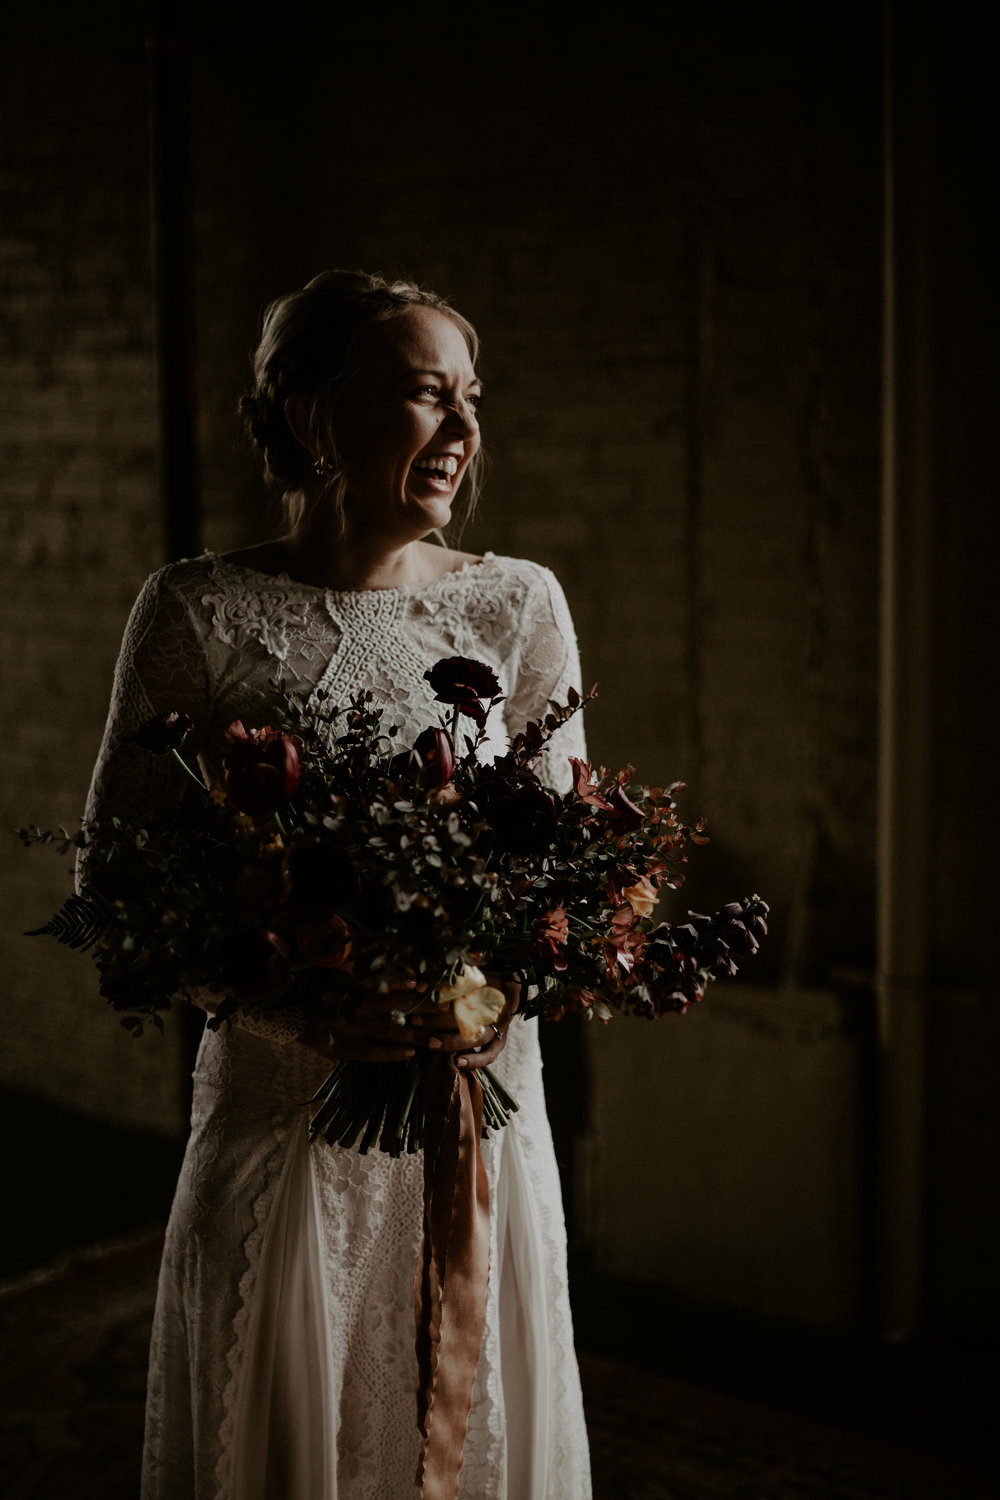 The_Steam_Plant_Dayton_Wedding-EDIT-137.jpg